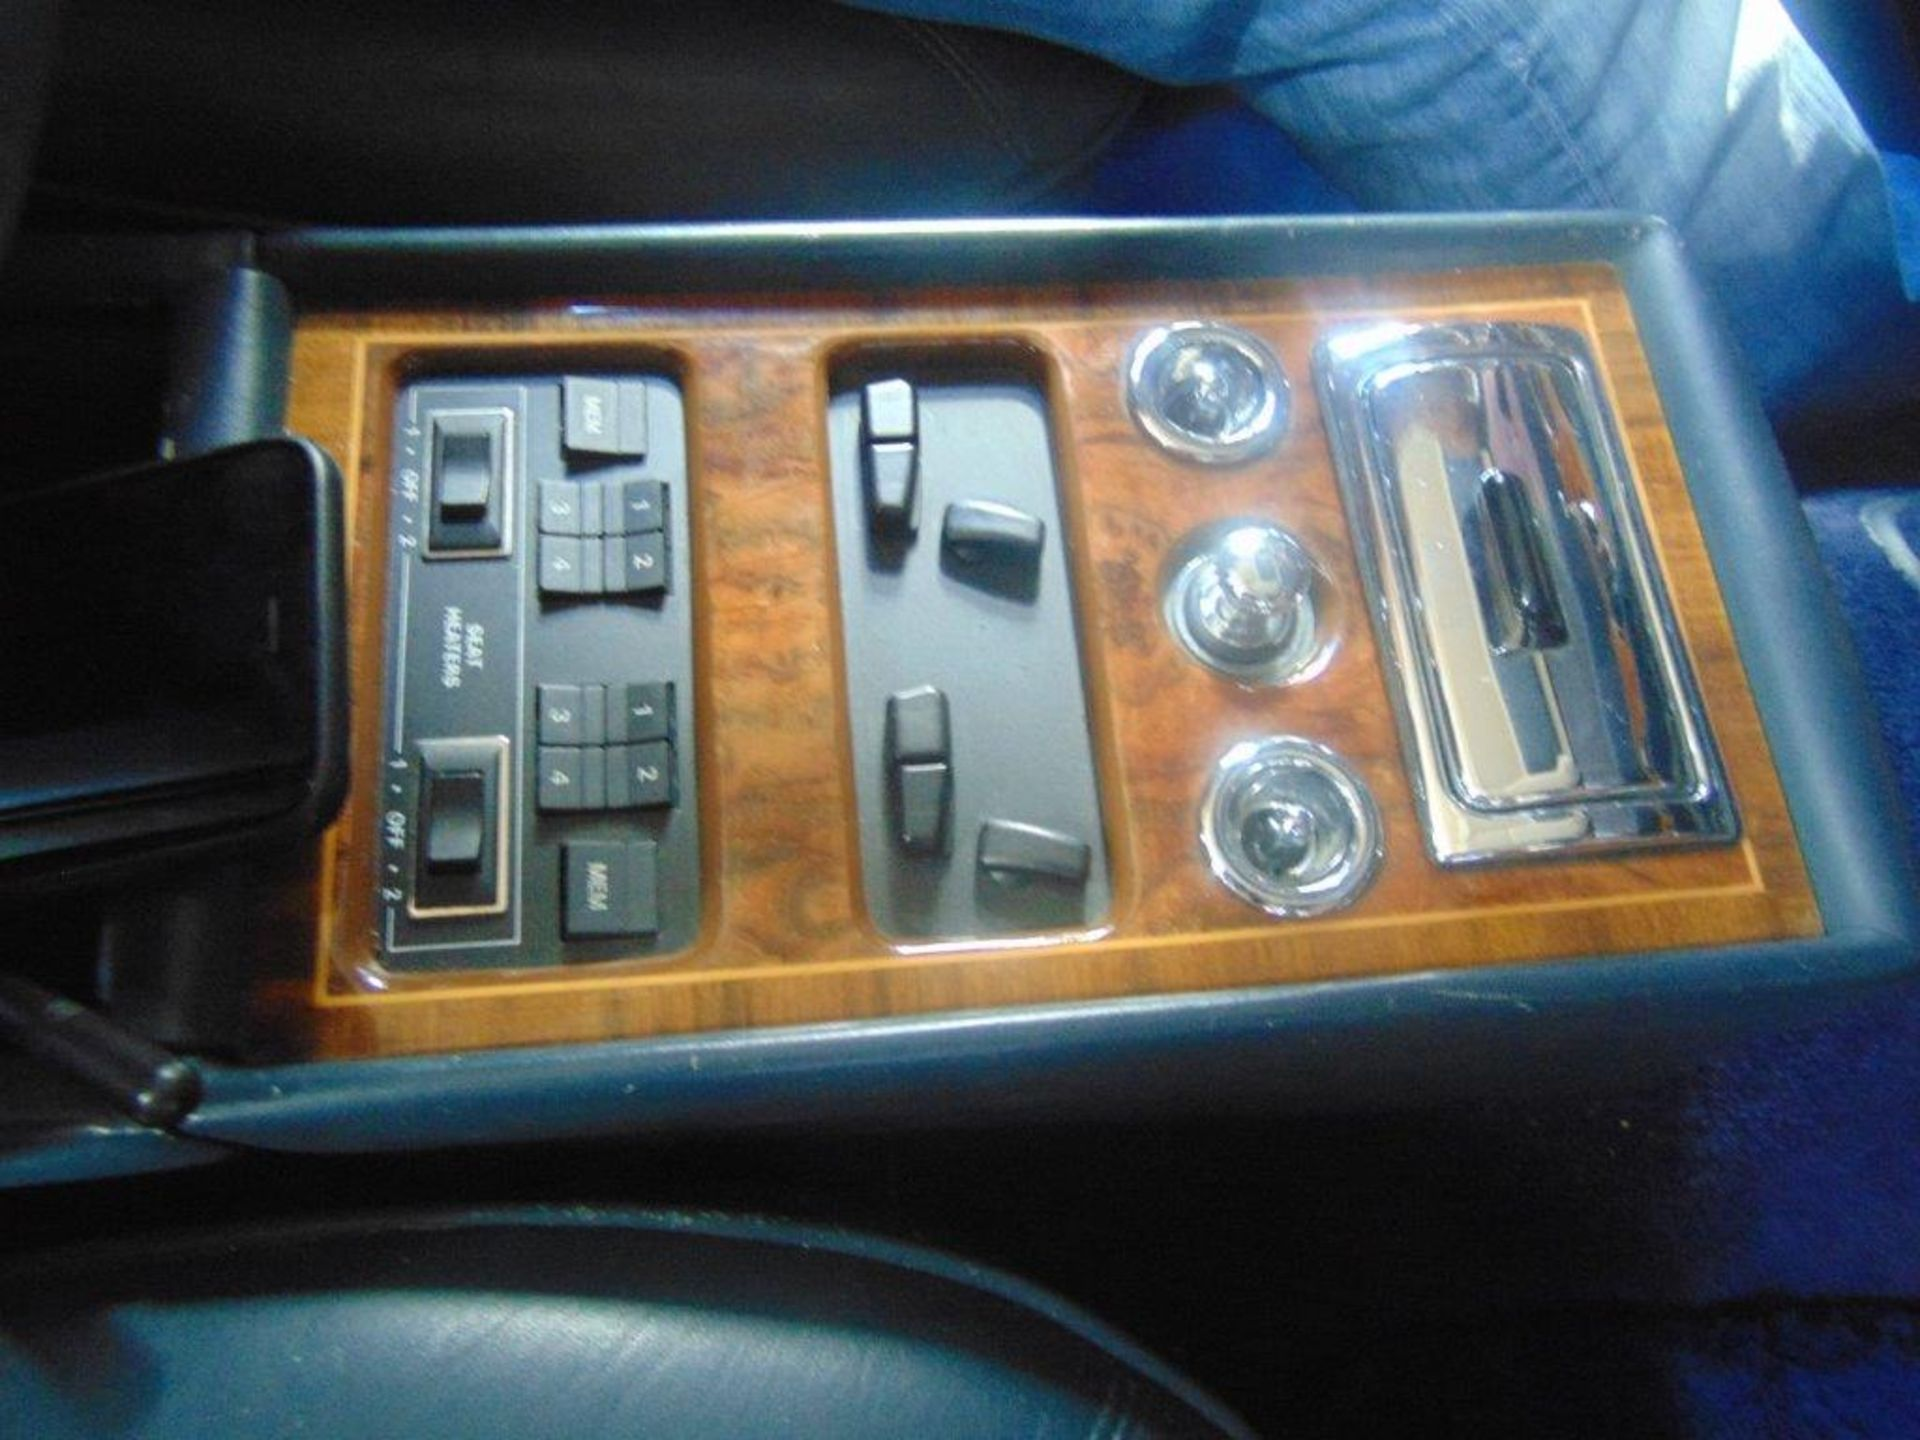 1991 ROLLS-ROYCE SILVER SPIRIT – ROYAL BLUE, 6.8 LIT. AC AND ALL SYSTEMS FULLY FUNCTIONAL, - Image 6 of 11